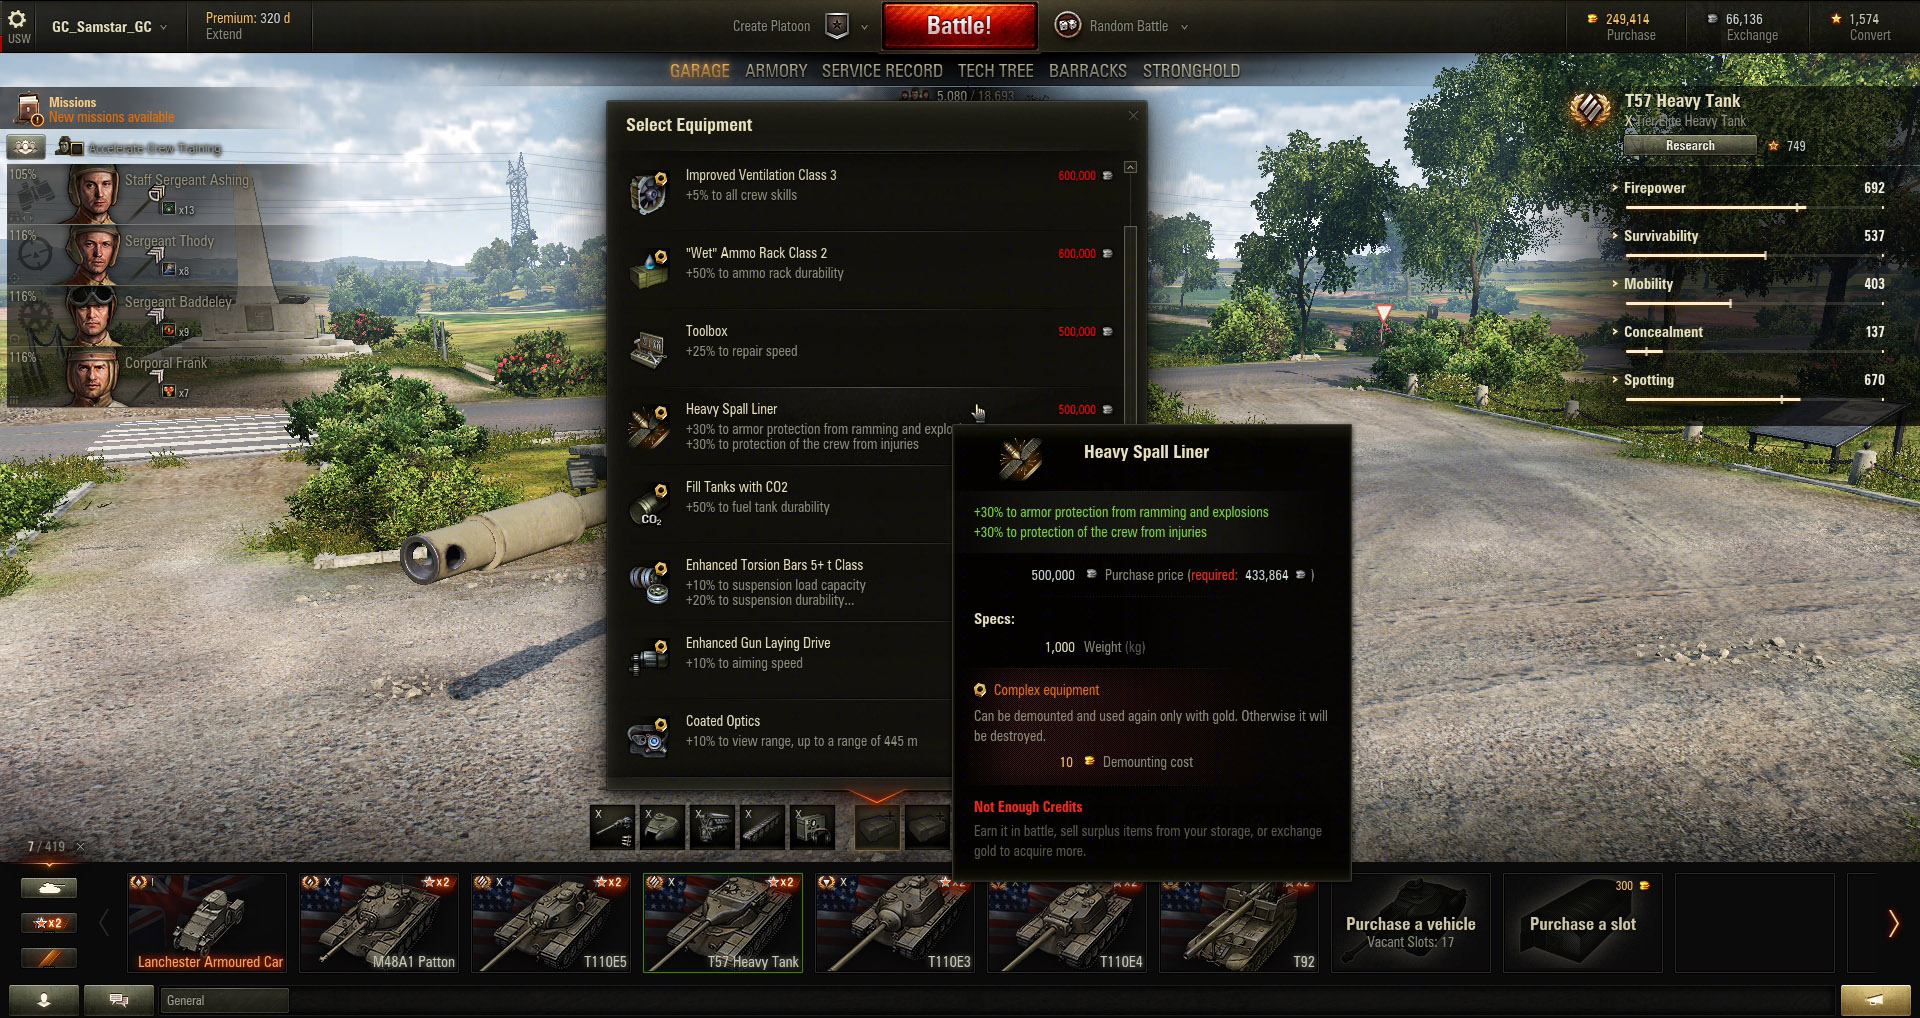 How to Use Equipment in World of Tanks | AllGamers